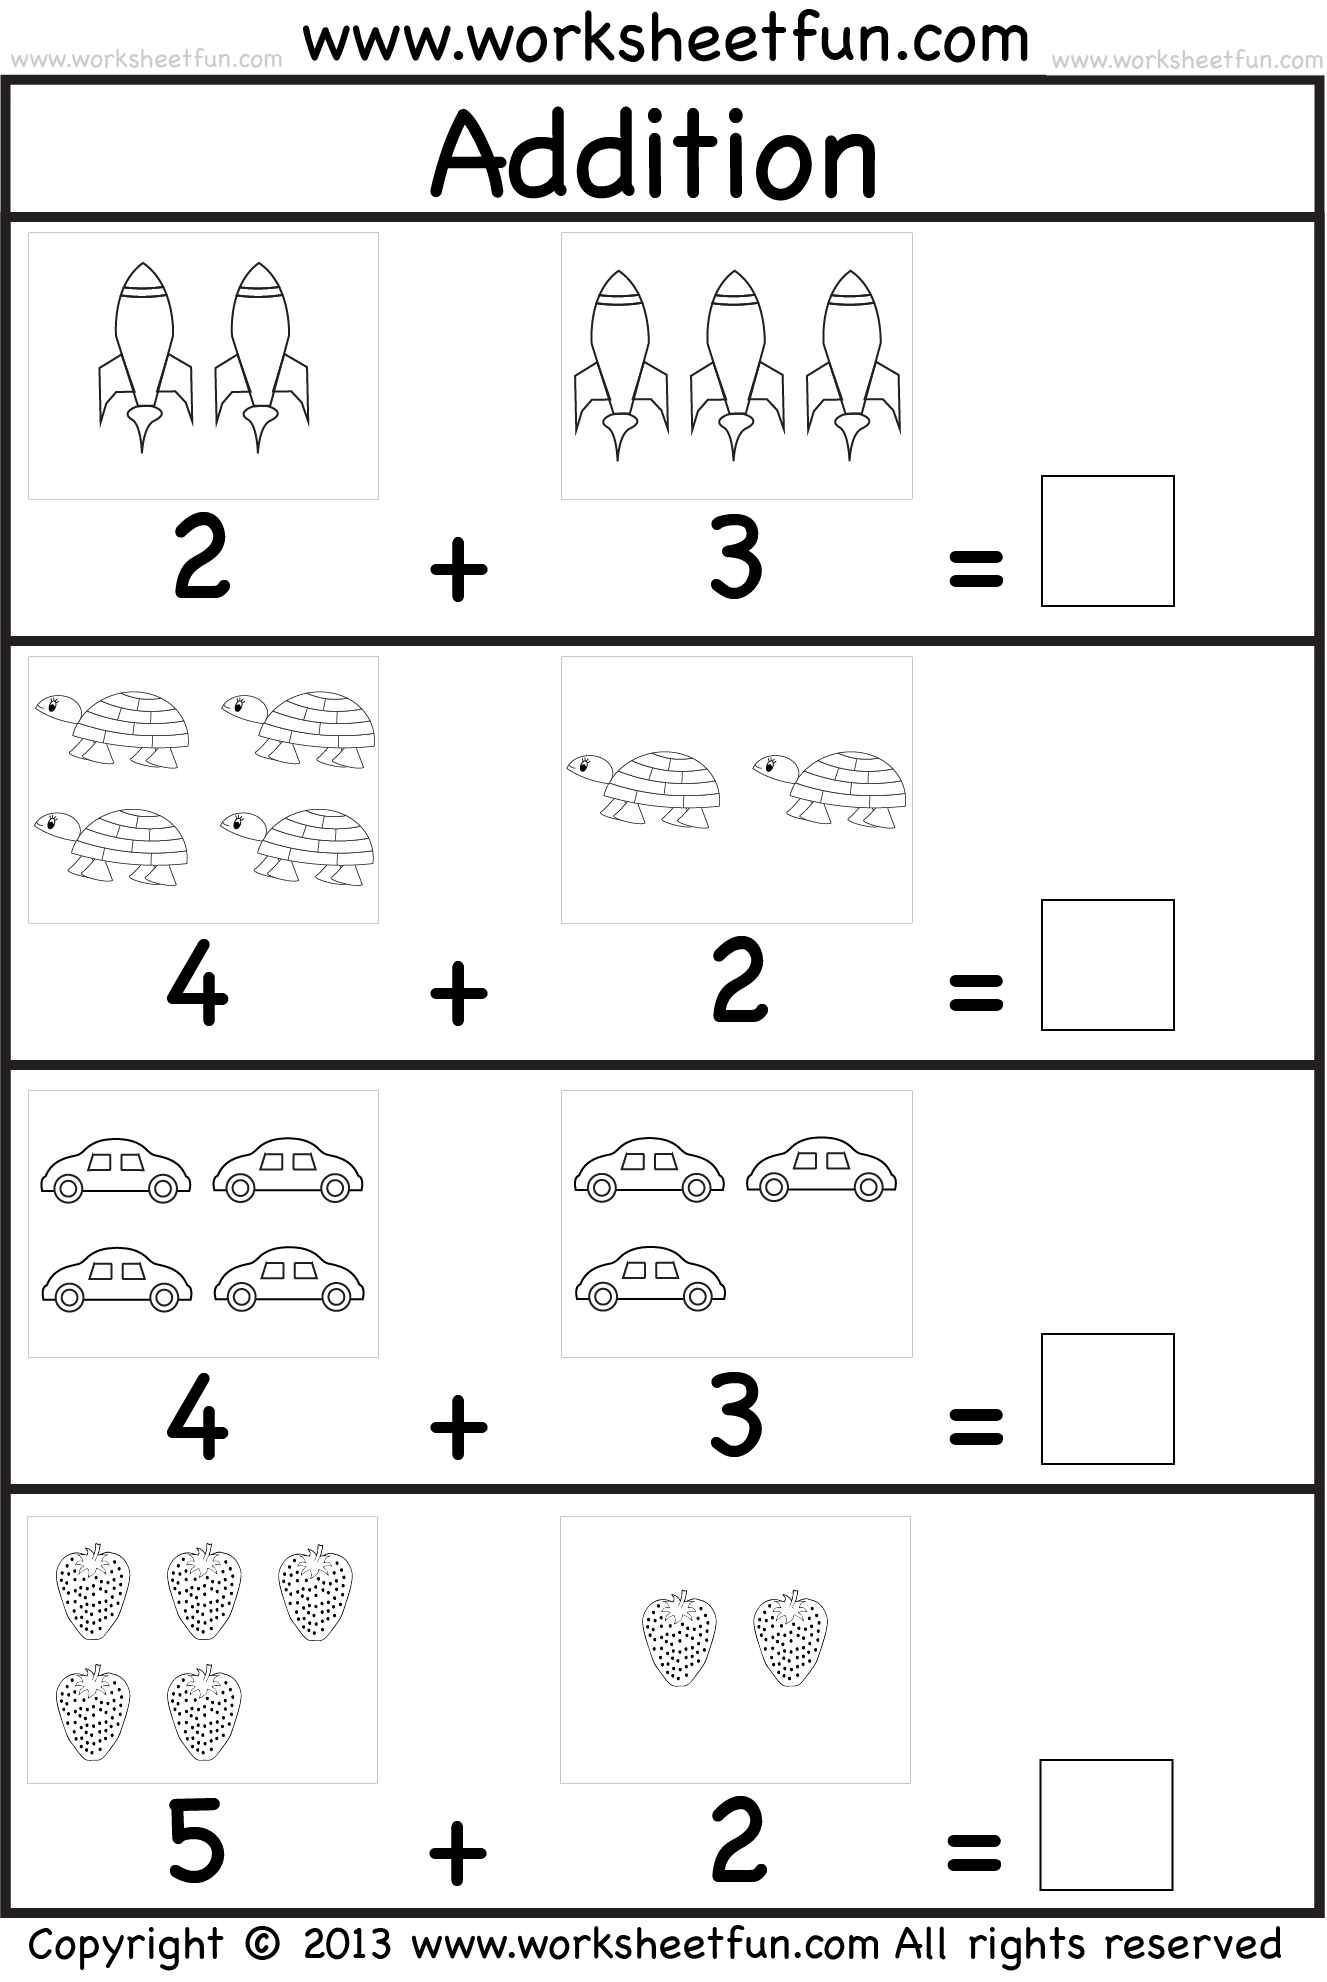 Addition Worksheet This Site Has Great Free Worksheets For